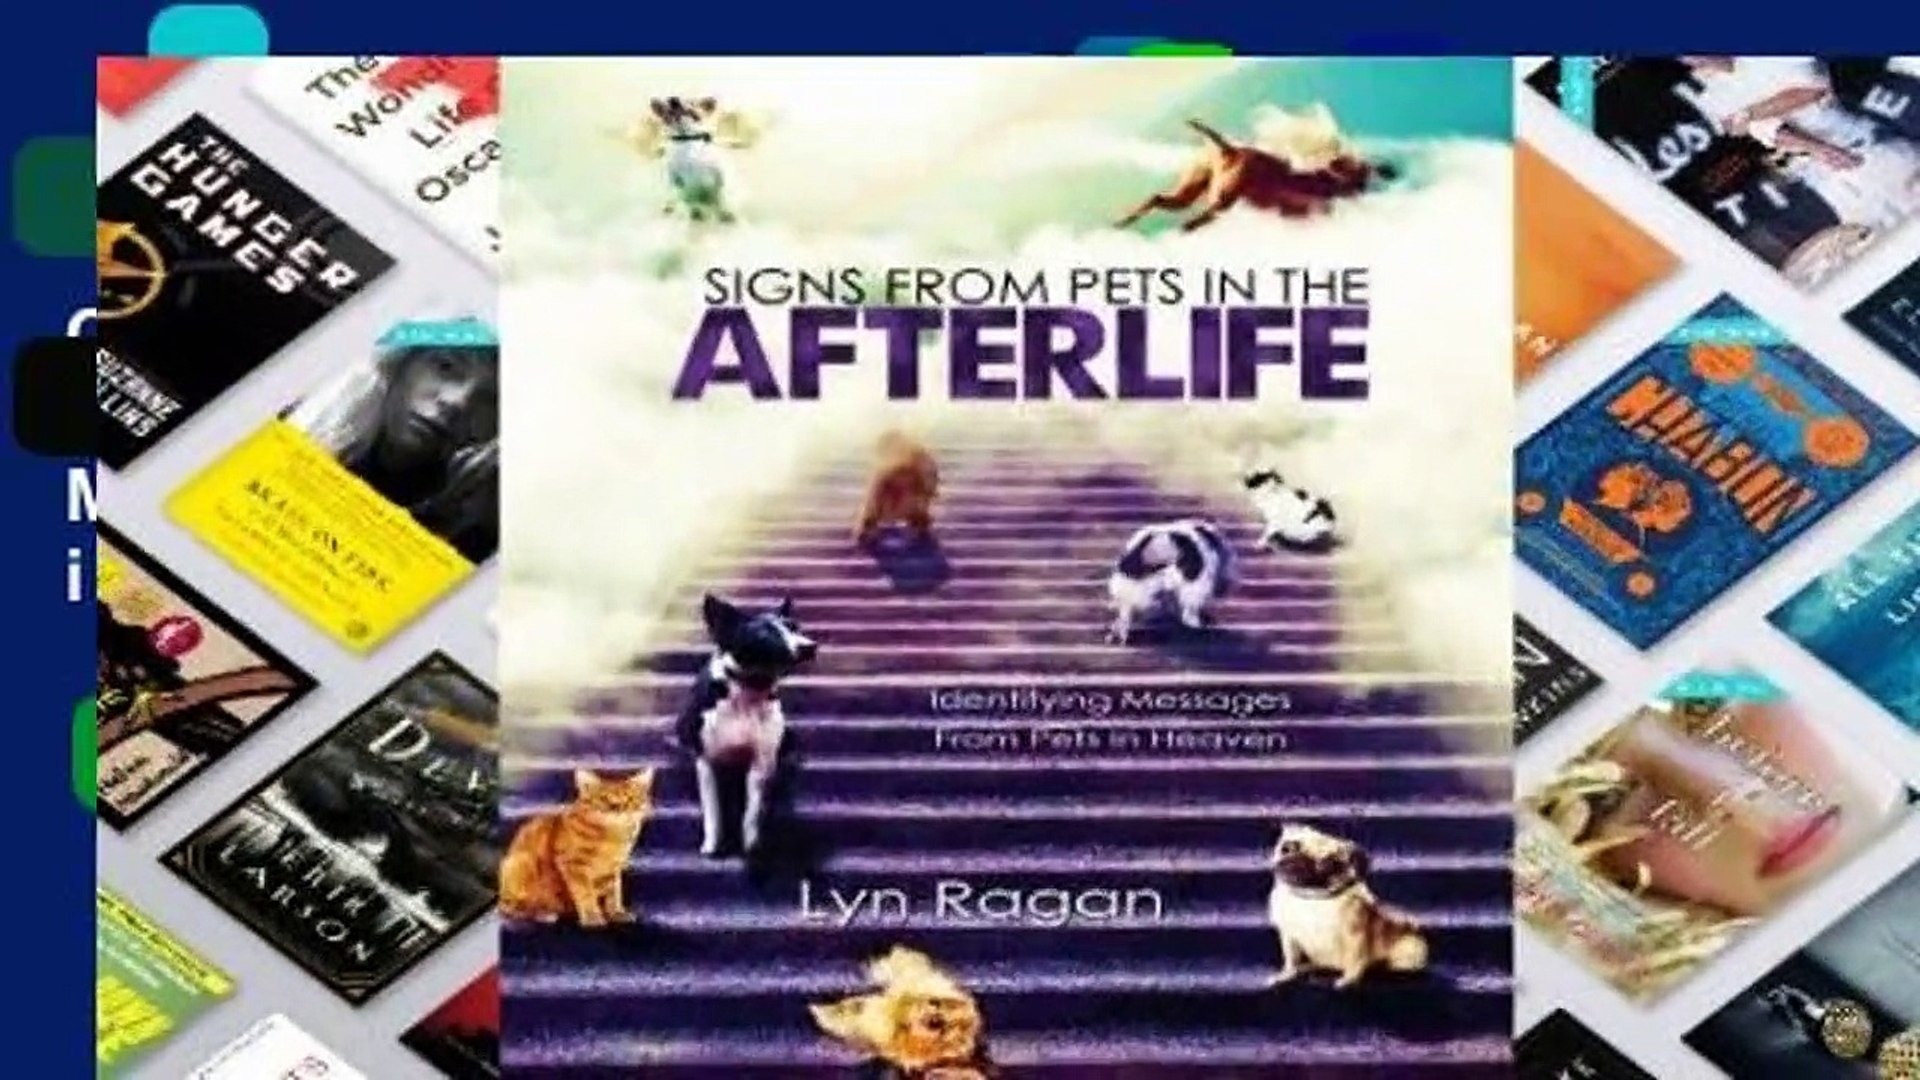 Online Signs from Pets in the Afterlife: Identifying Messages from Pets in Heaven  For Trial